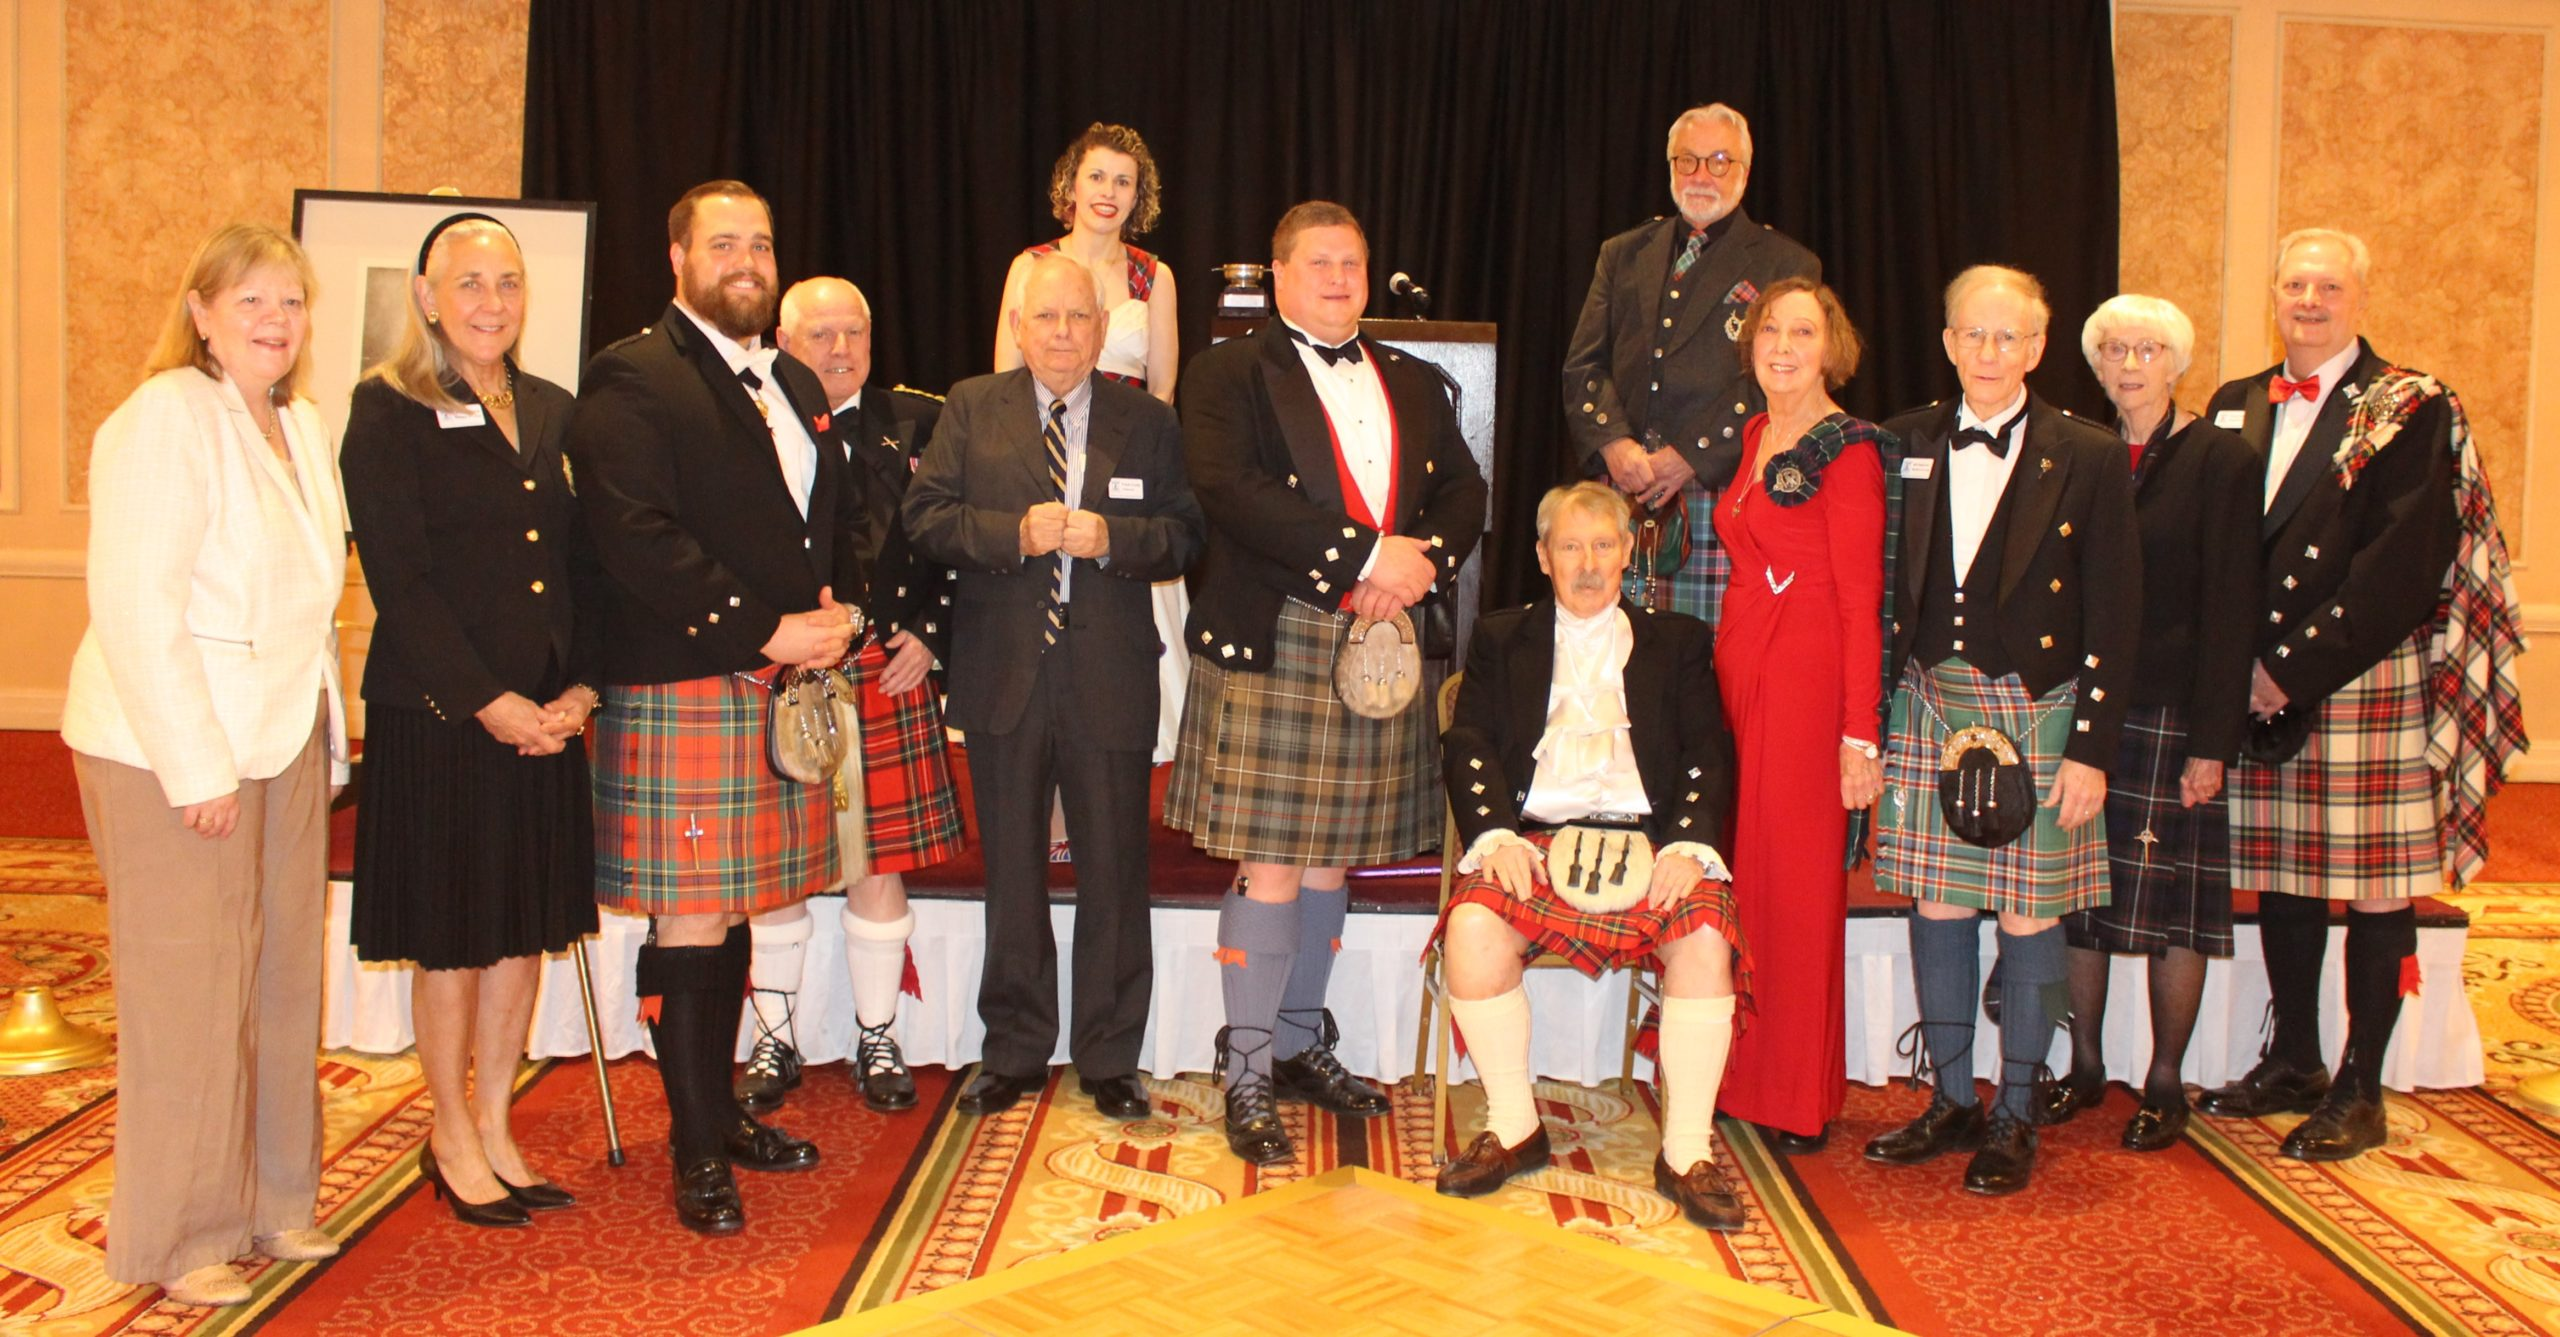 The 2019-2020 Board of Directors attending the 2020 Burns Dinner